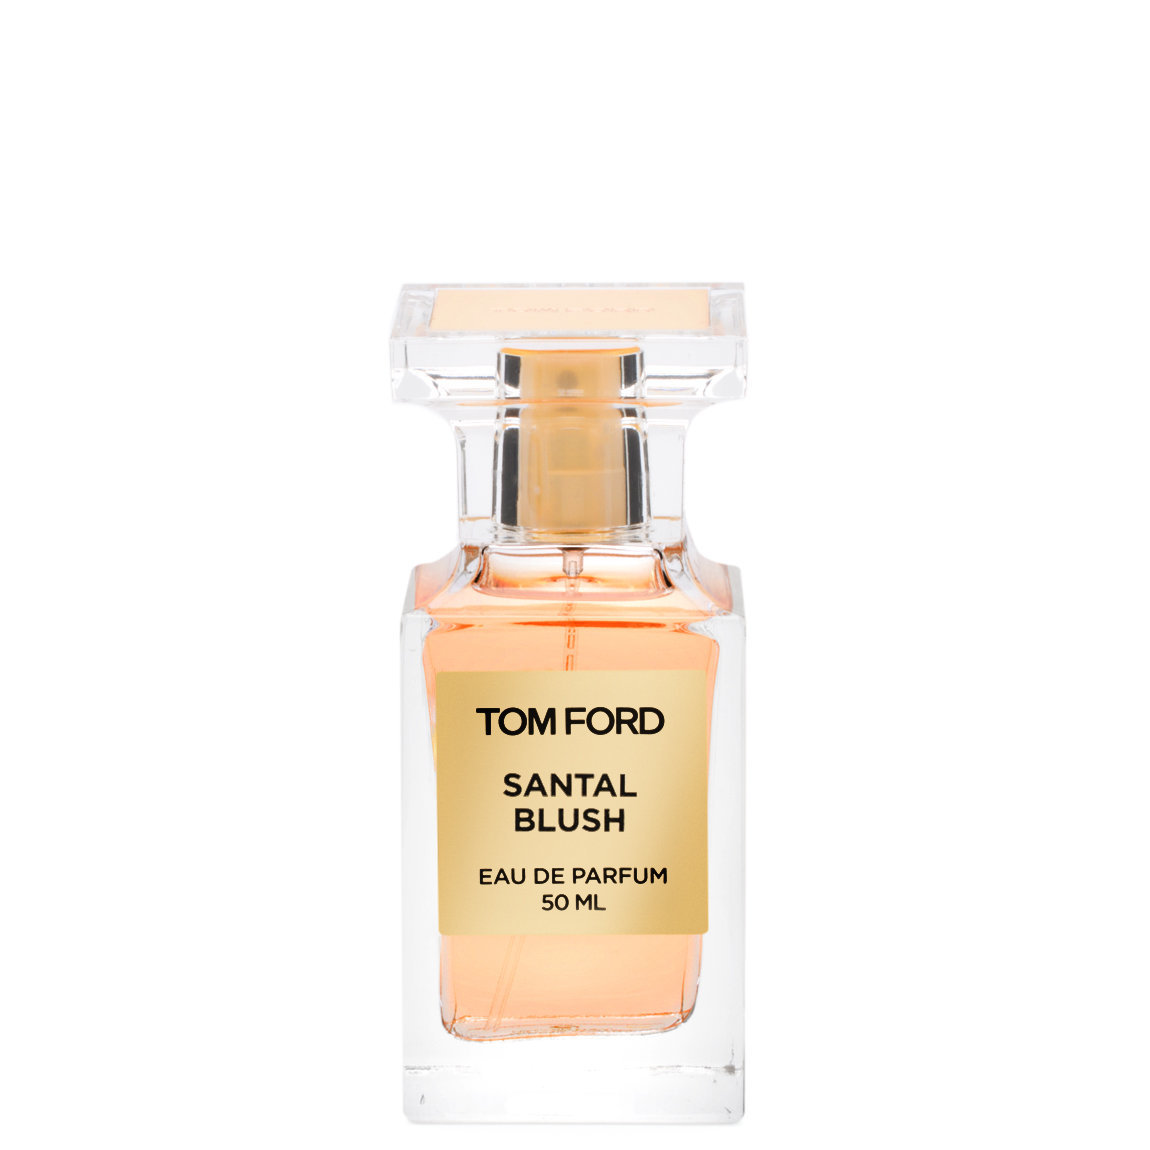 TOM FORD Santal Blush product smear.